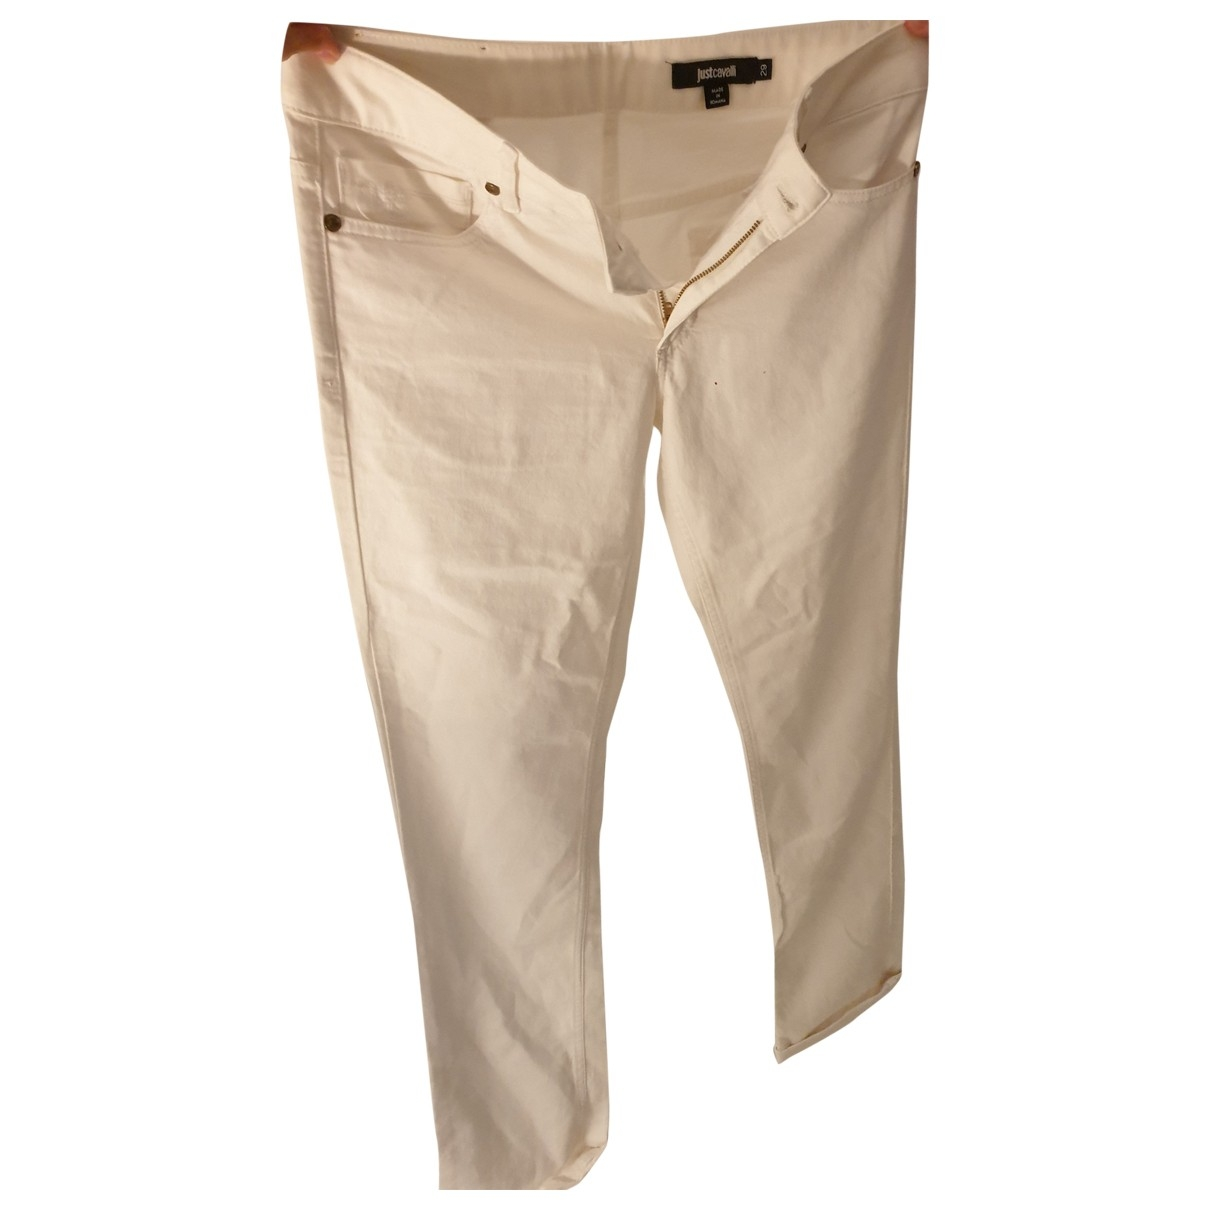 Just Cavalli \N White Cotton Trousers for Women 38 FR